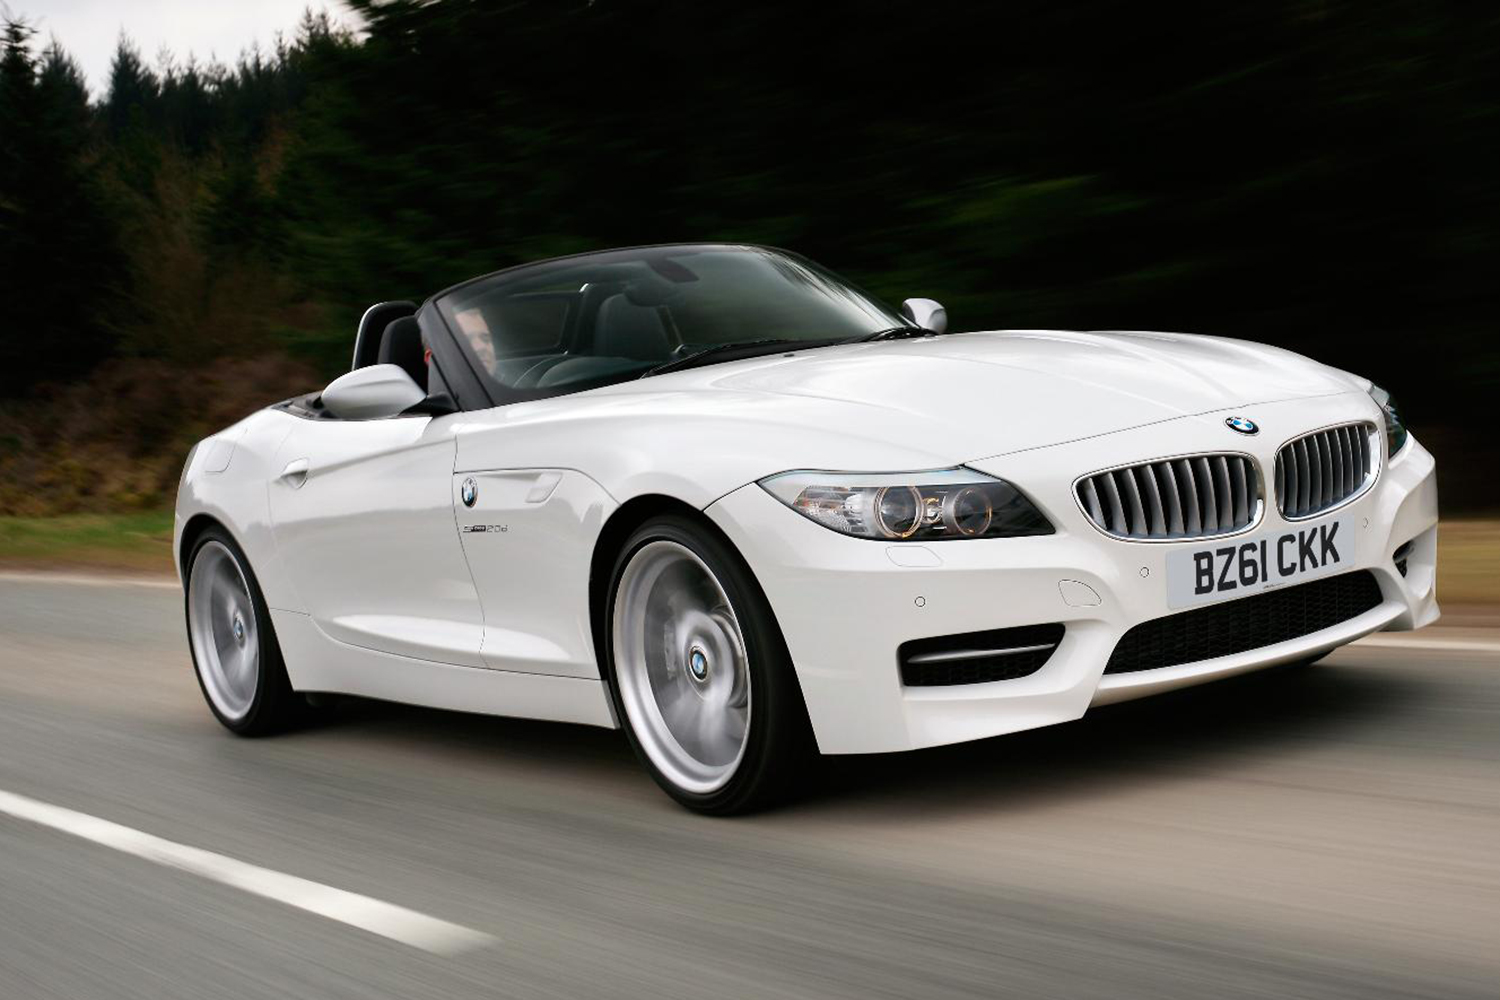 BMW Z4 sDrive18i 2011 photo - 1